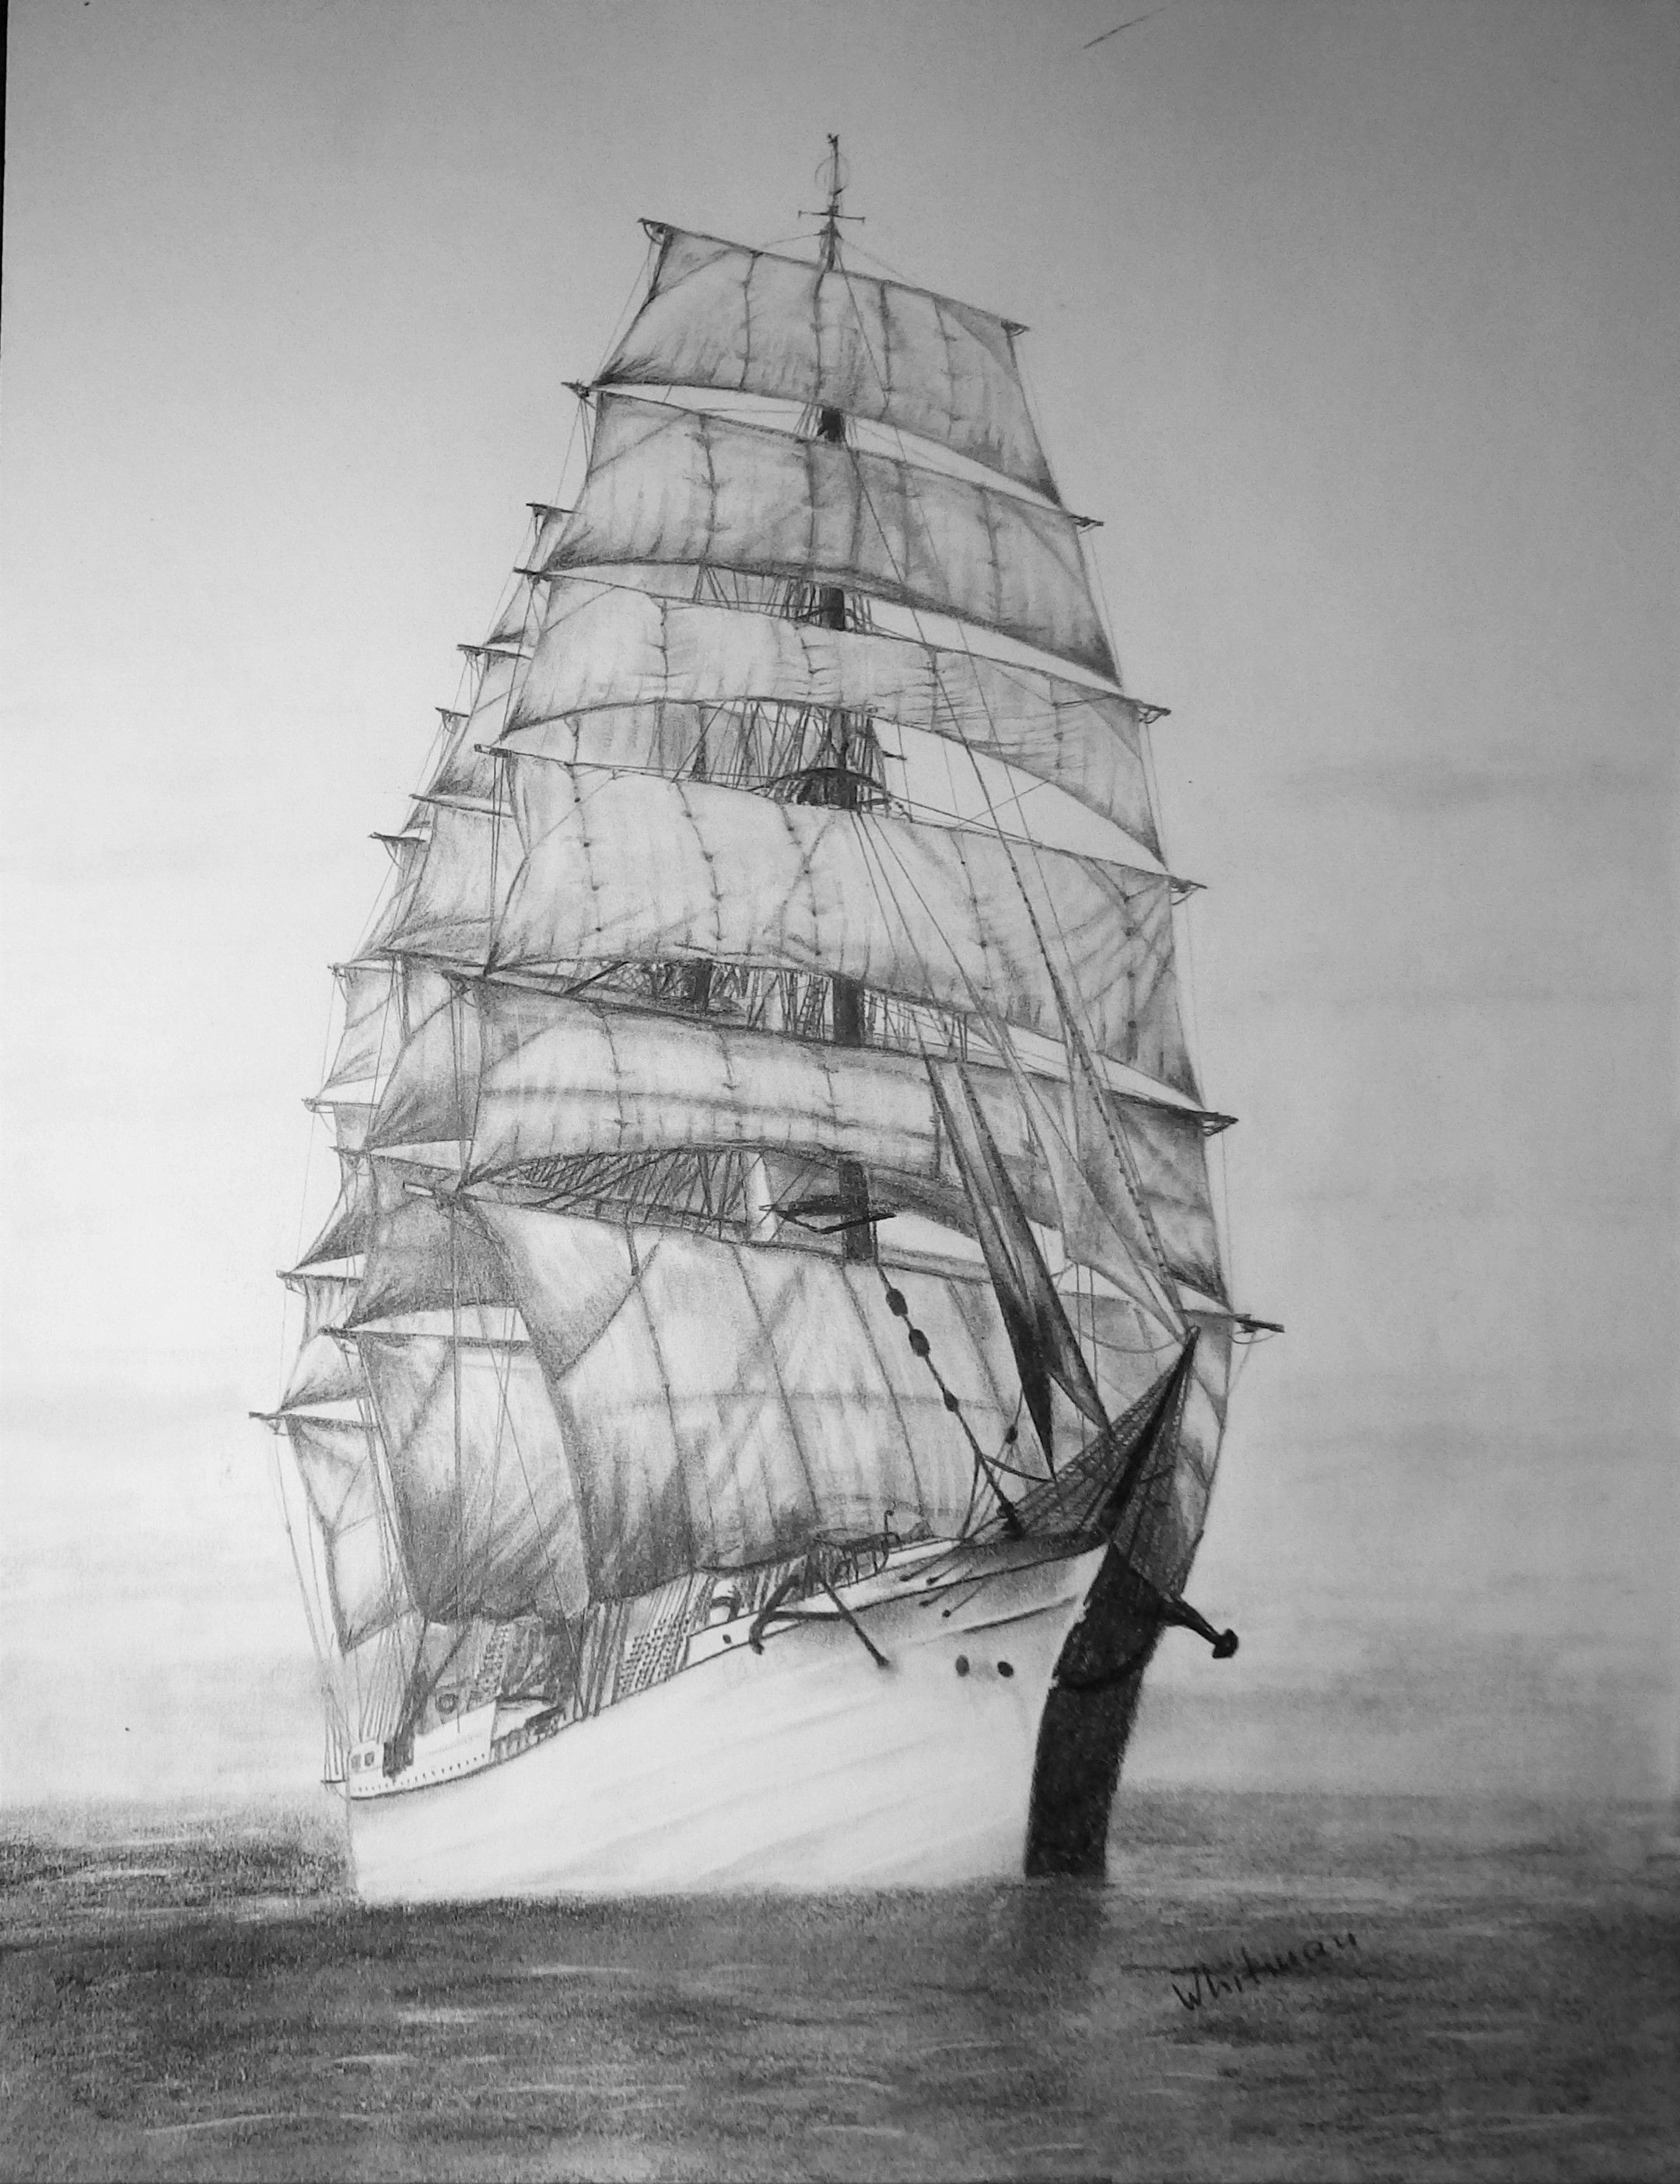 Ship Barque Bolton Diagrams Not Lossing Wiring Diagram Terms Sail Rigging Tall Ships Pinterest Sedov Beautiful 4 Mast Russian Training Graphite Rh Com